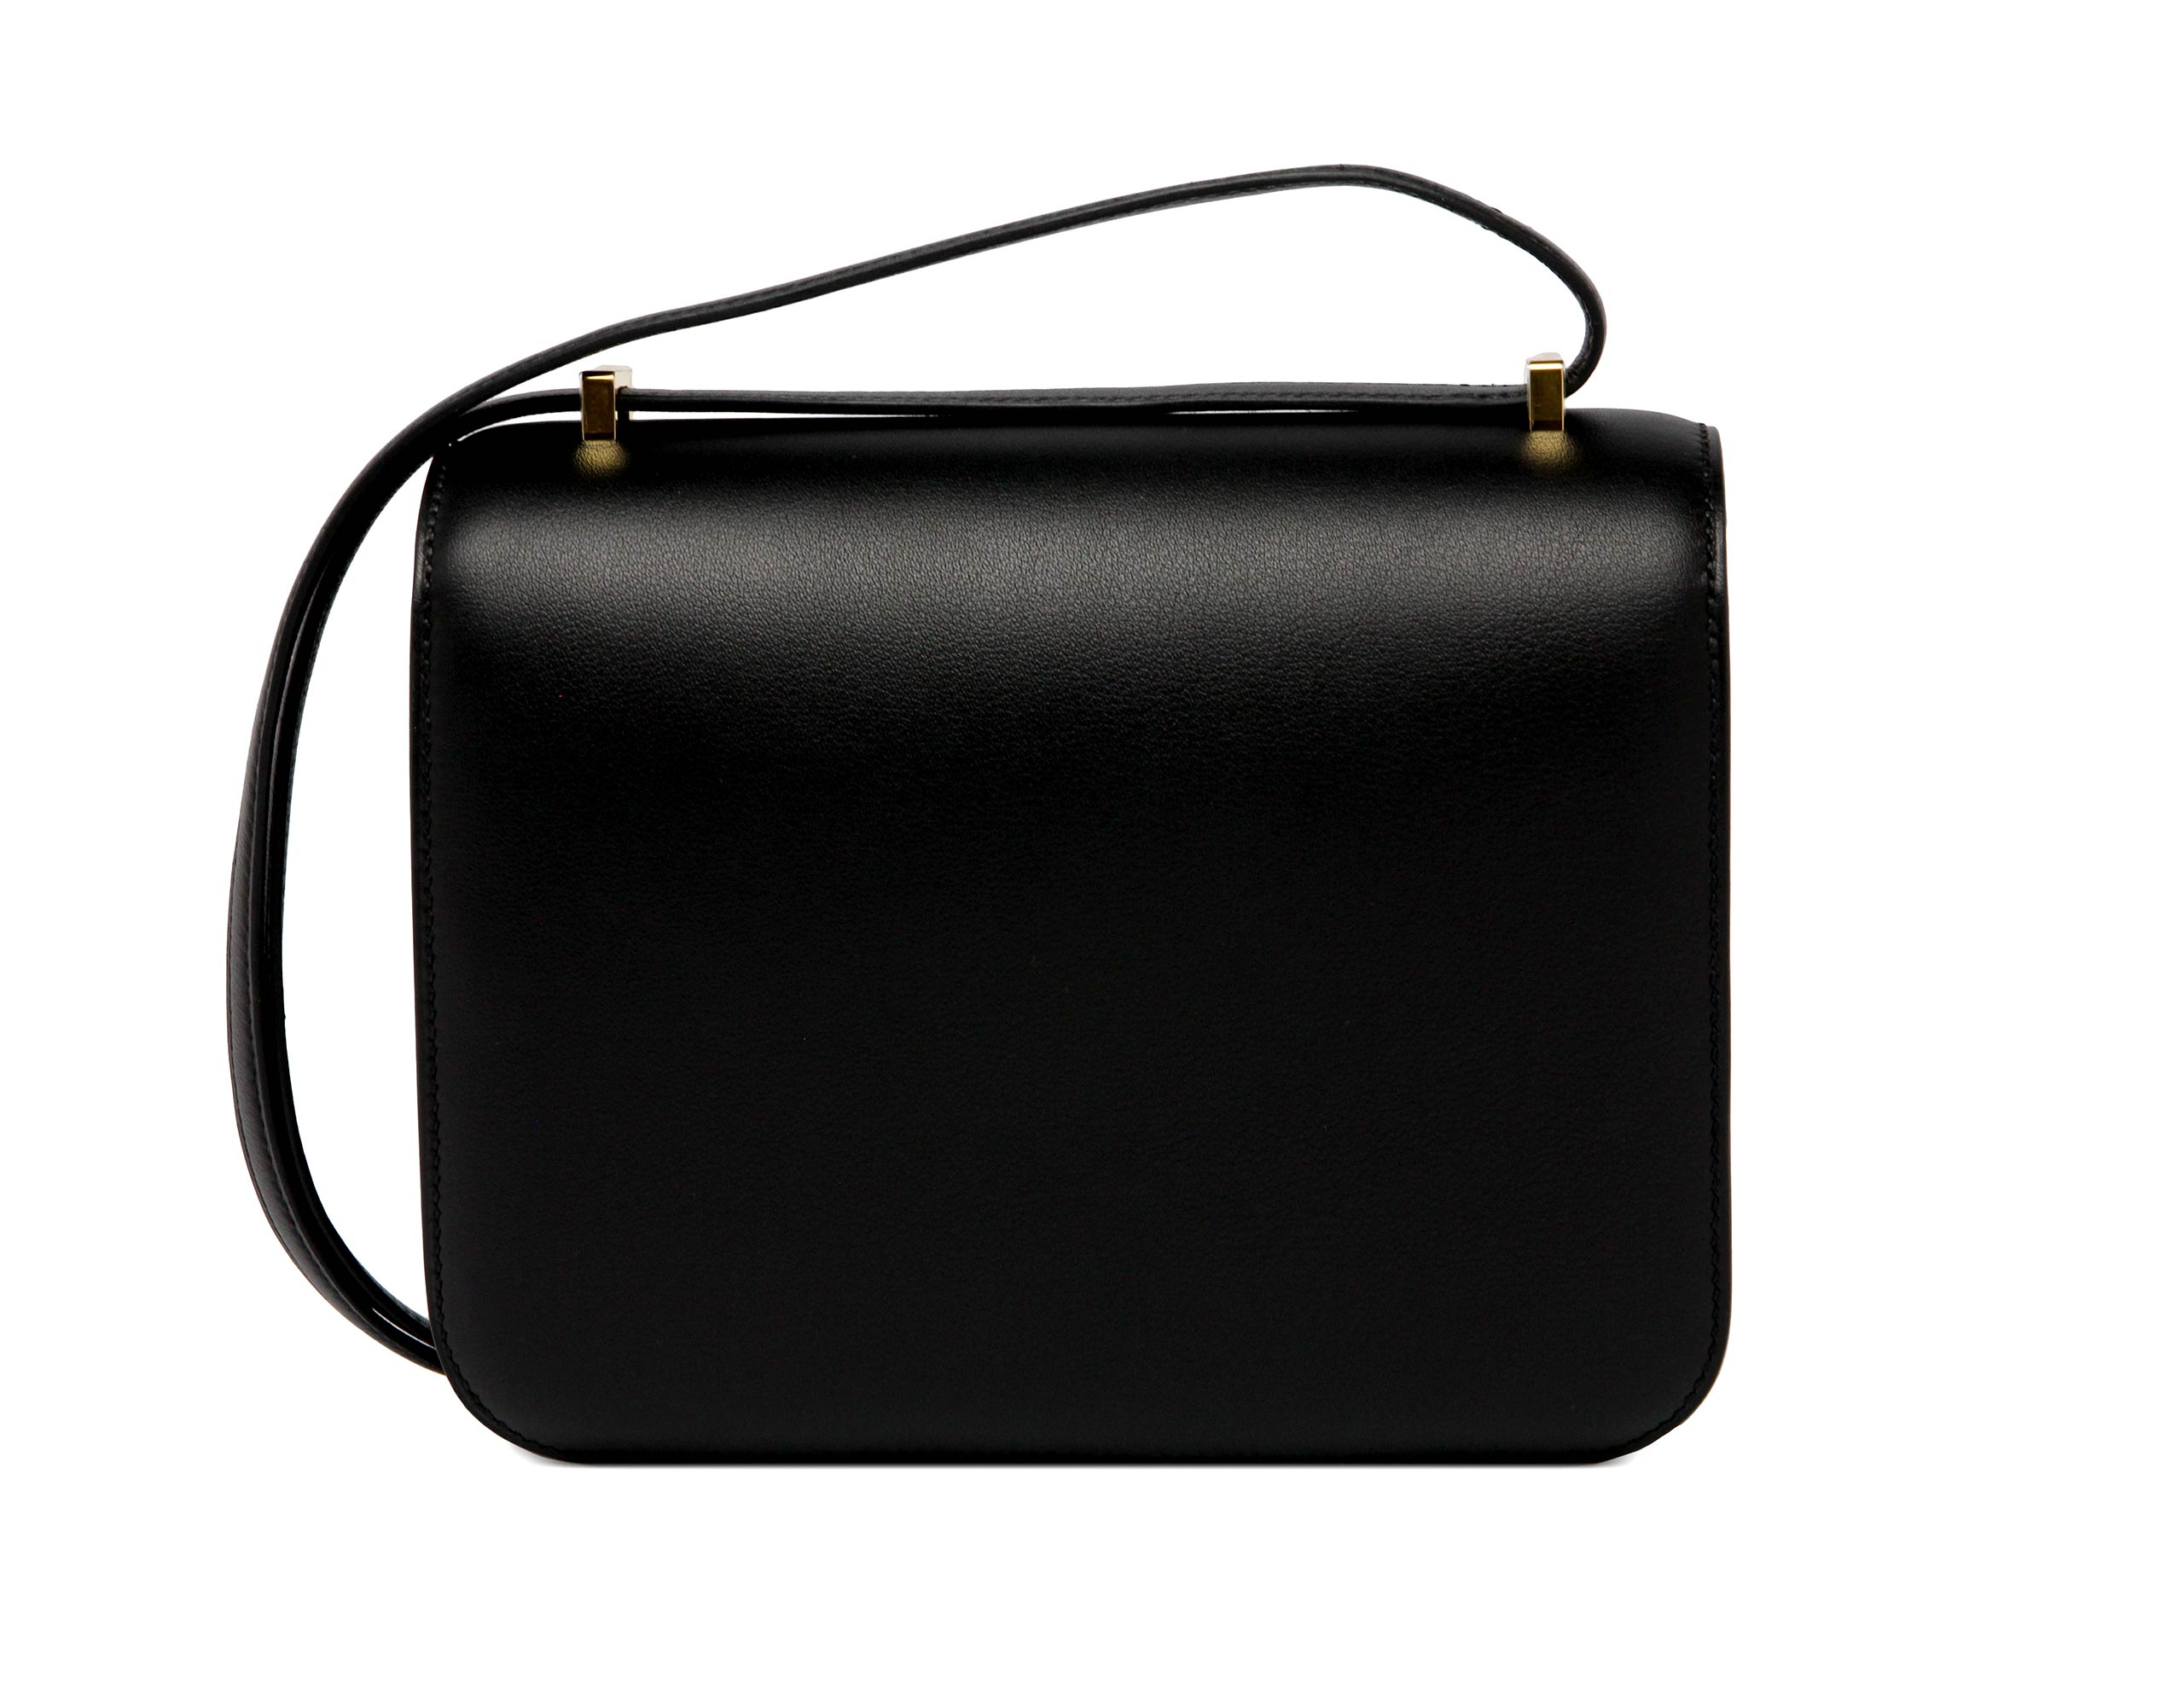 Hermes Constance Black with Gold